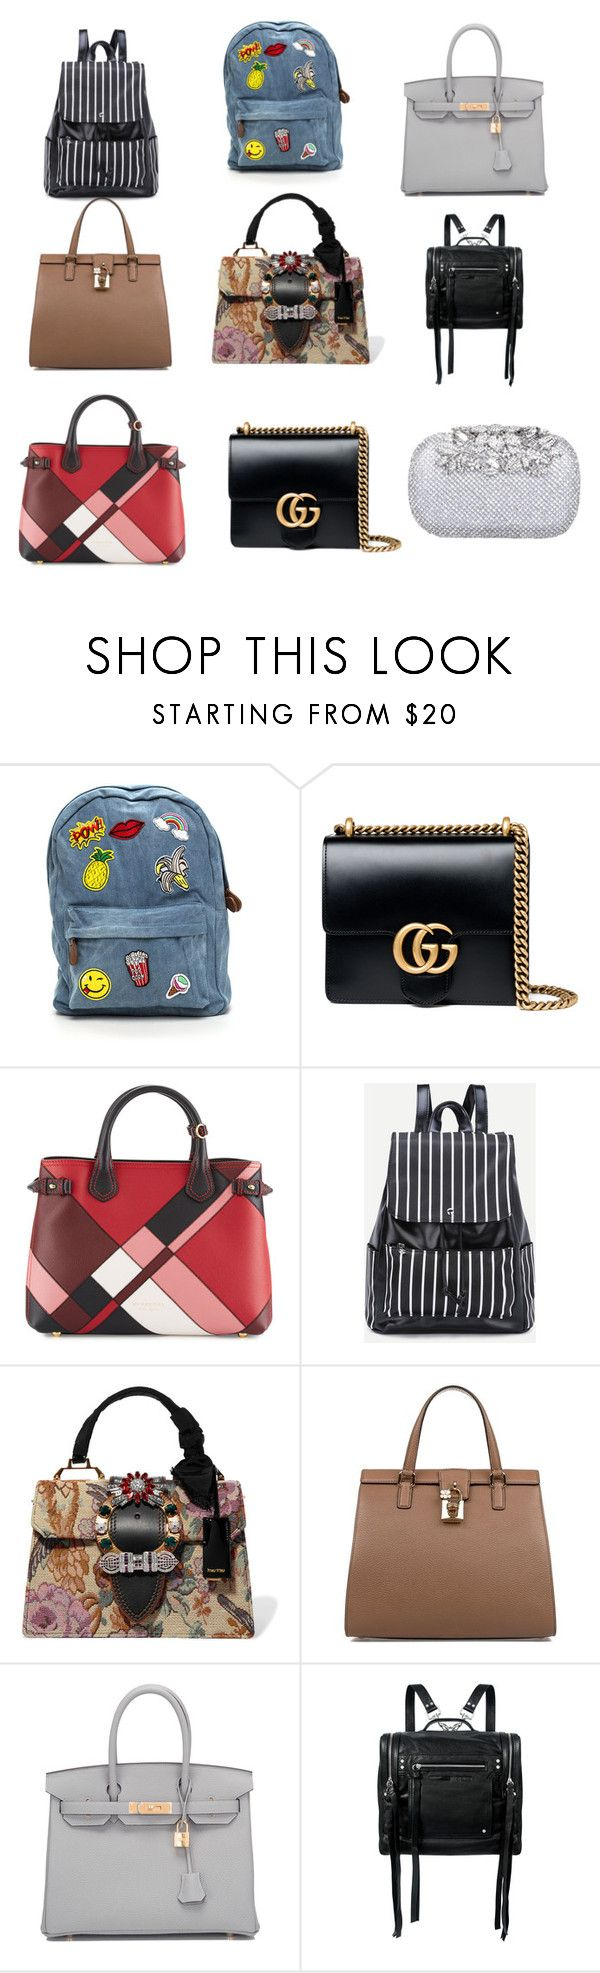 """BAGS"" by nurzarmina on Polyvore featuring Gucci, Burberry, Miu Miu, Dolce&Gabbana, Hermès and McQ by Alexander McQueen"